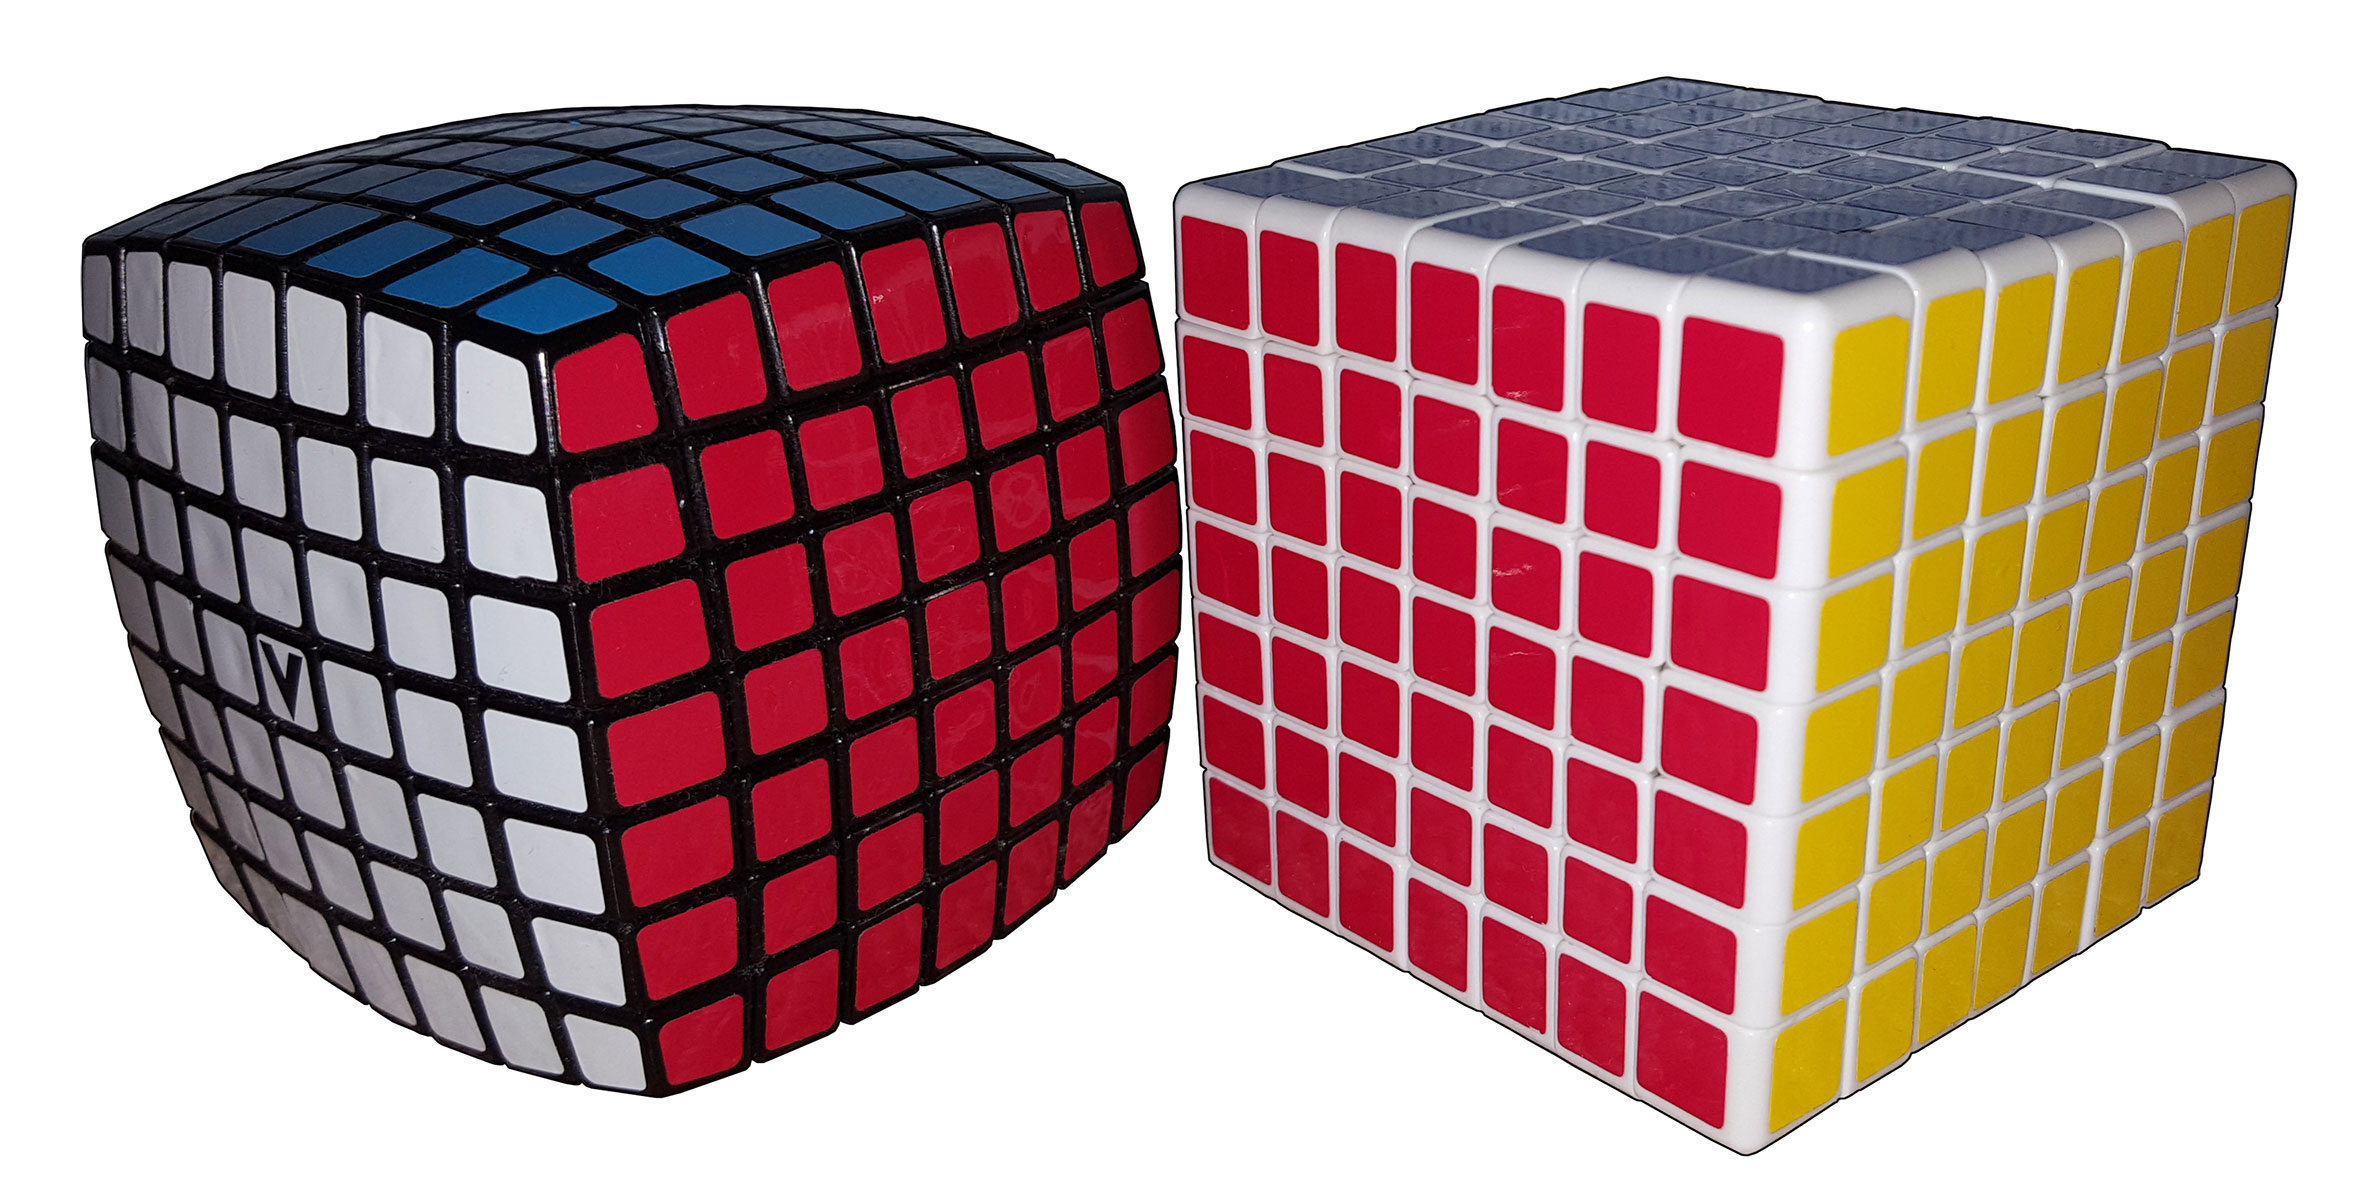 UNIQUE ITEM SPIDER rubix cube Geduldspiele